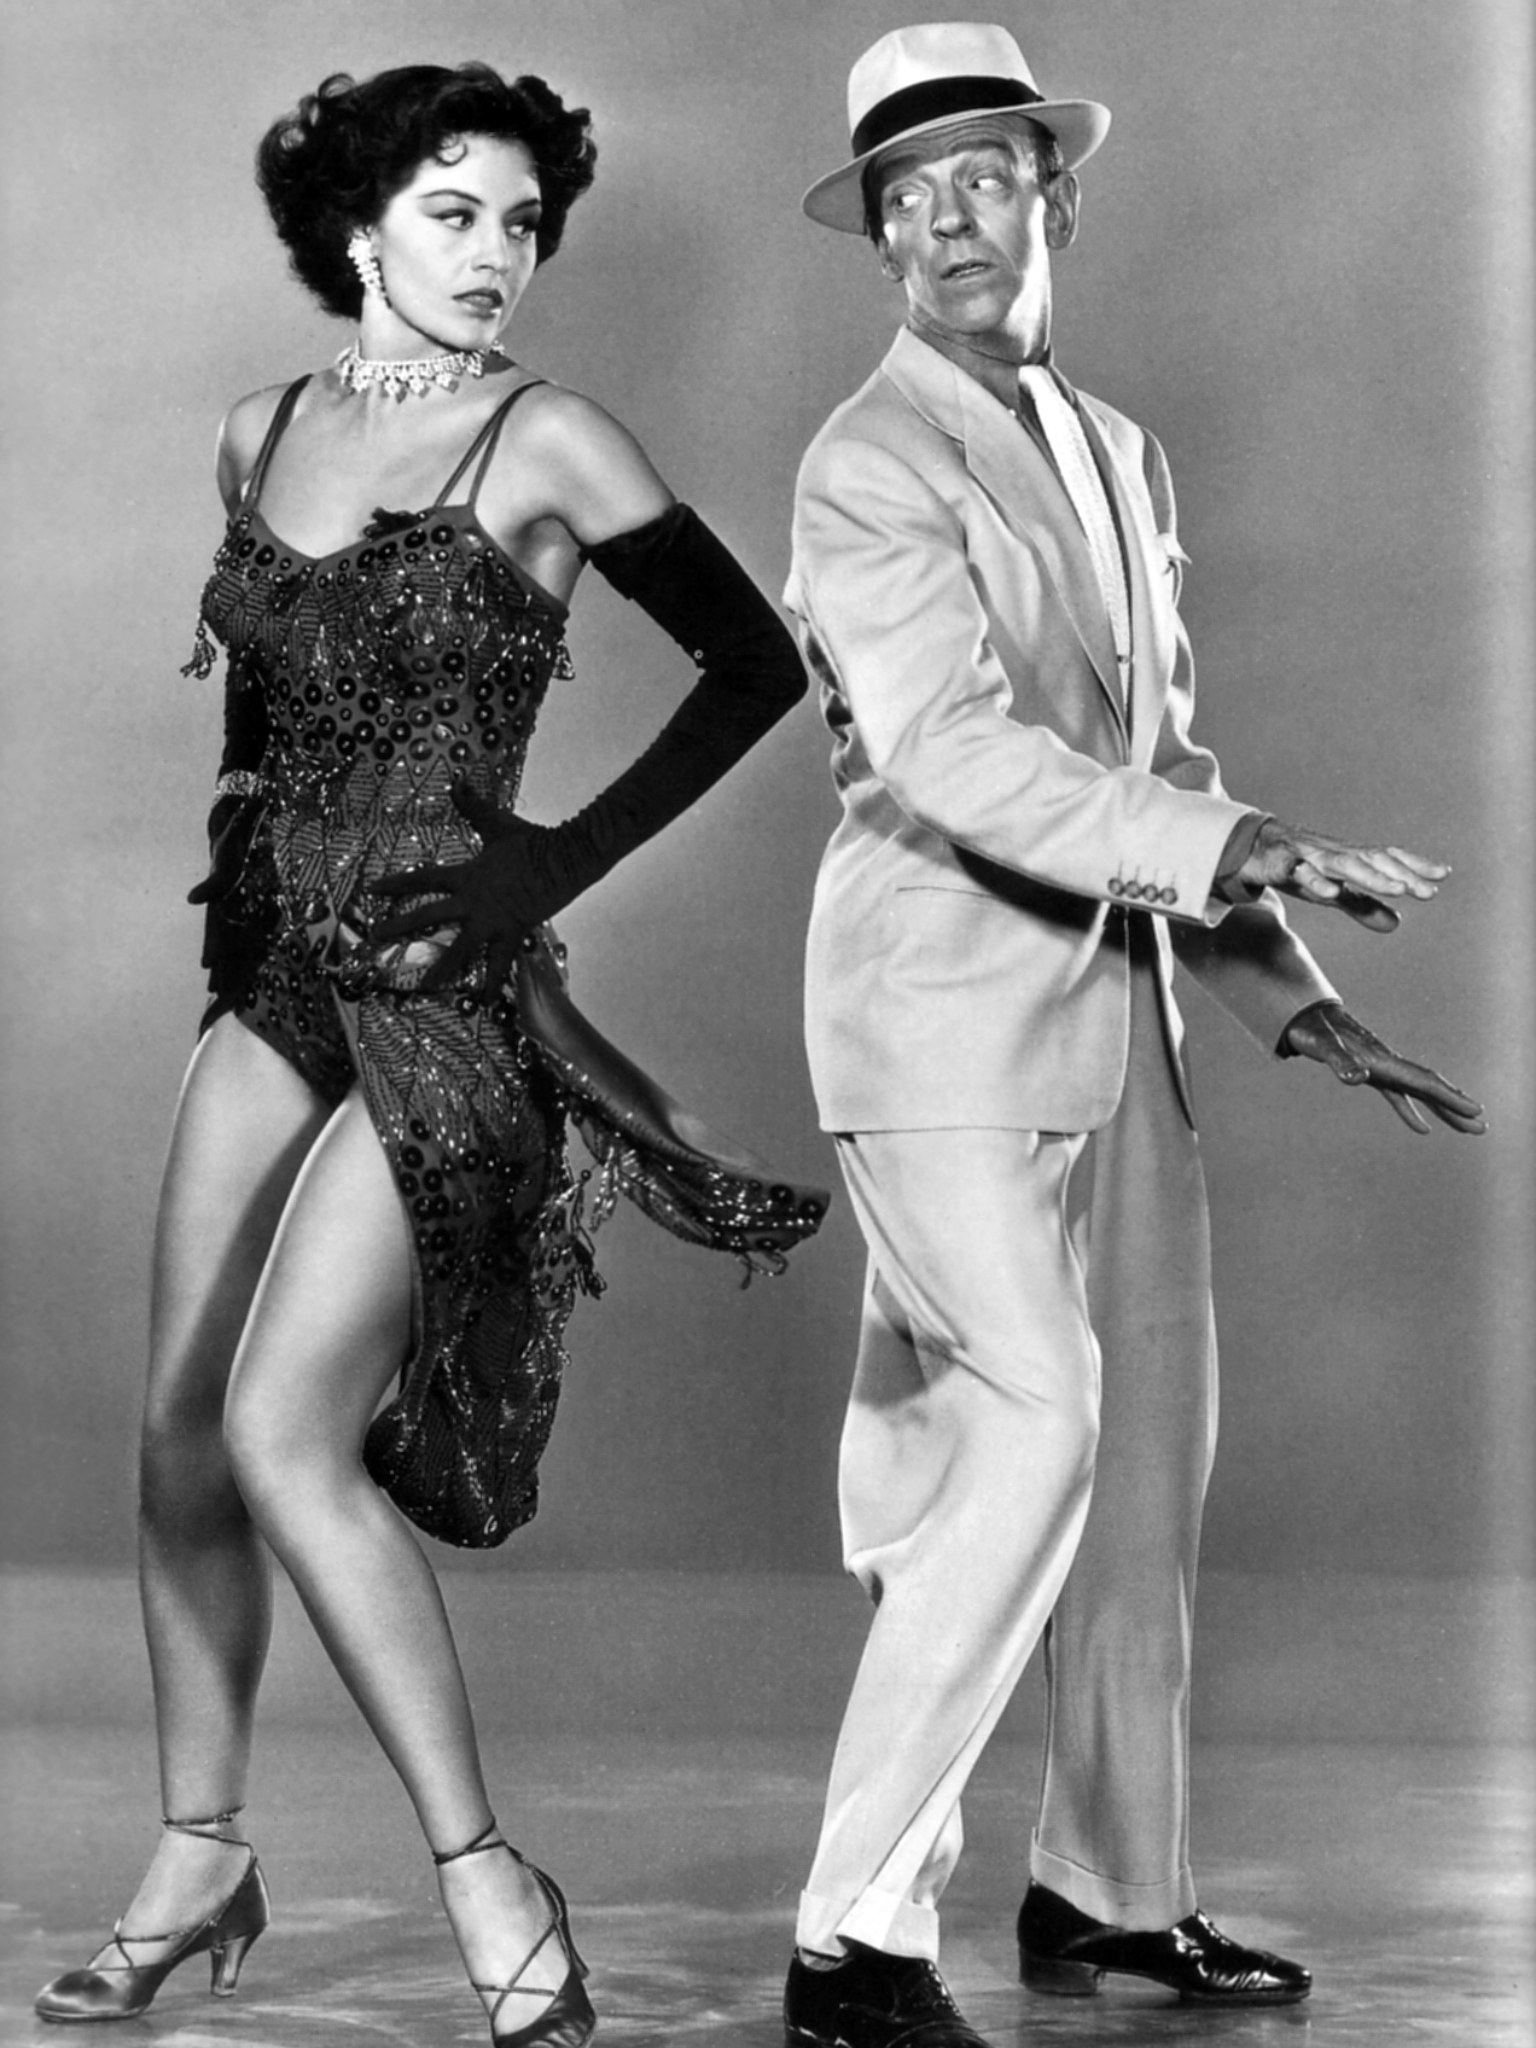 Cyd Charisse nude (92 photo) Gallery, Snapchat, cameltoe